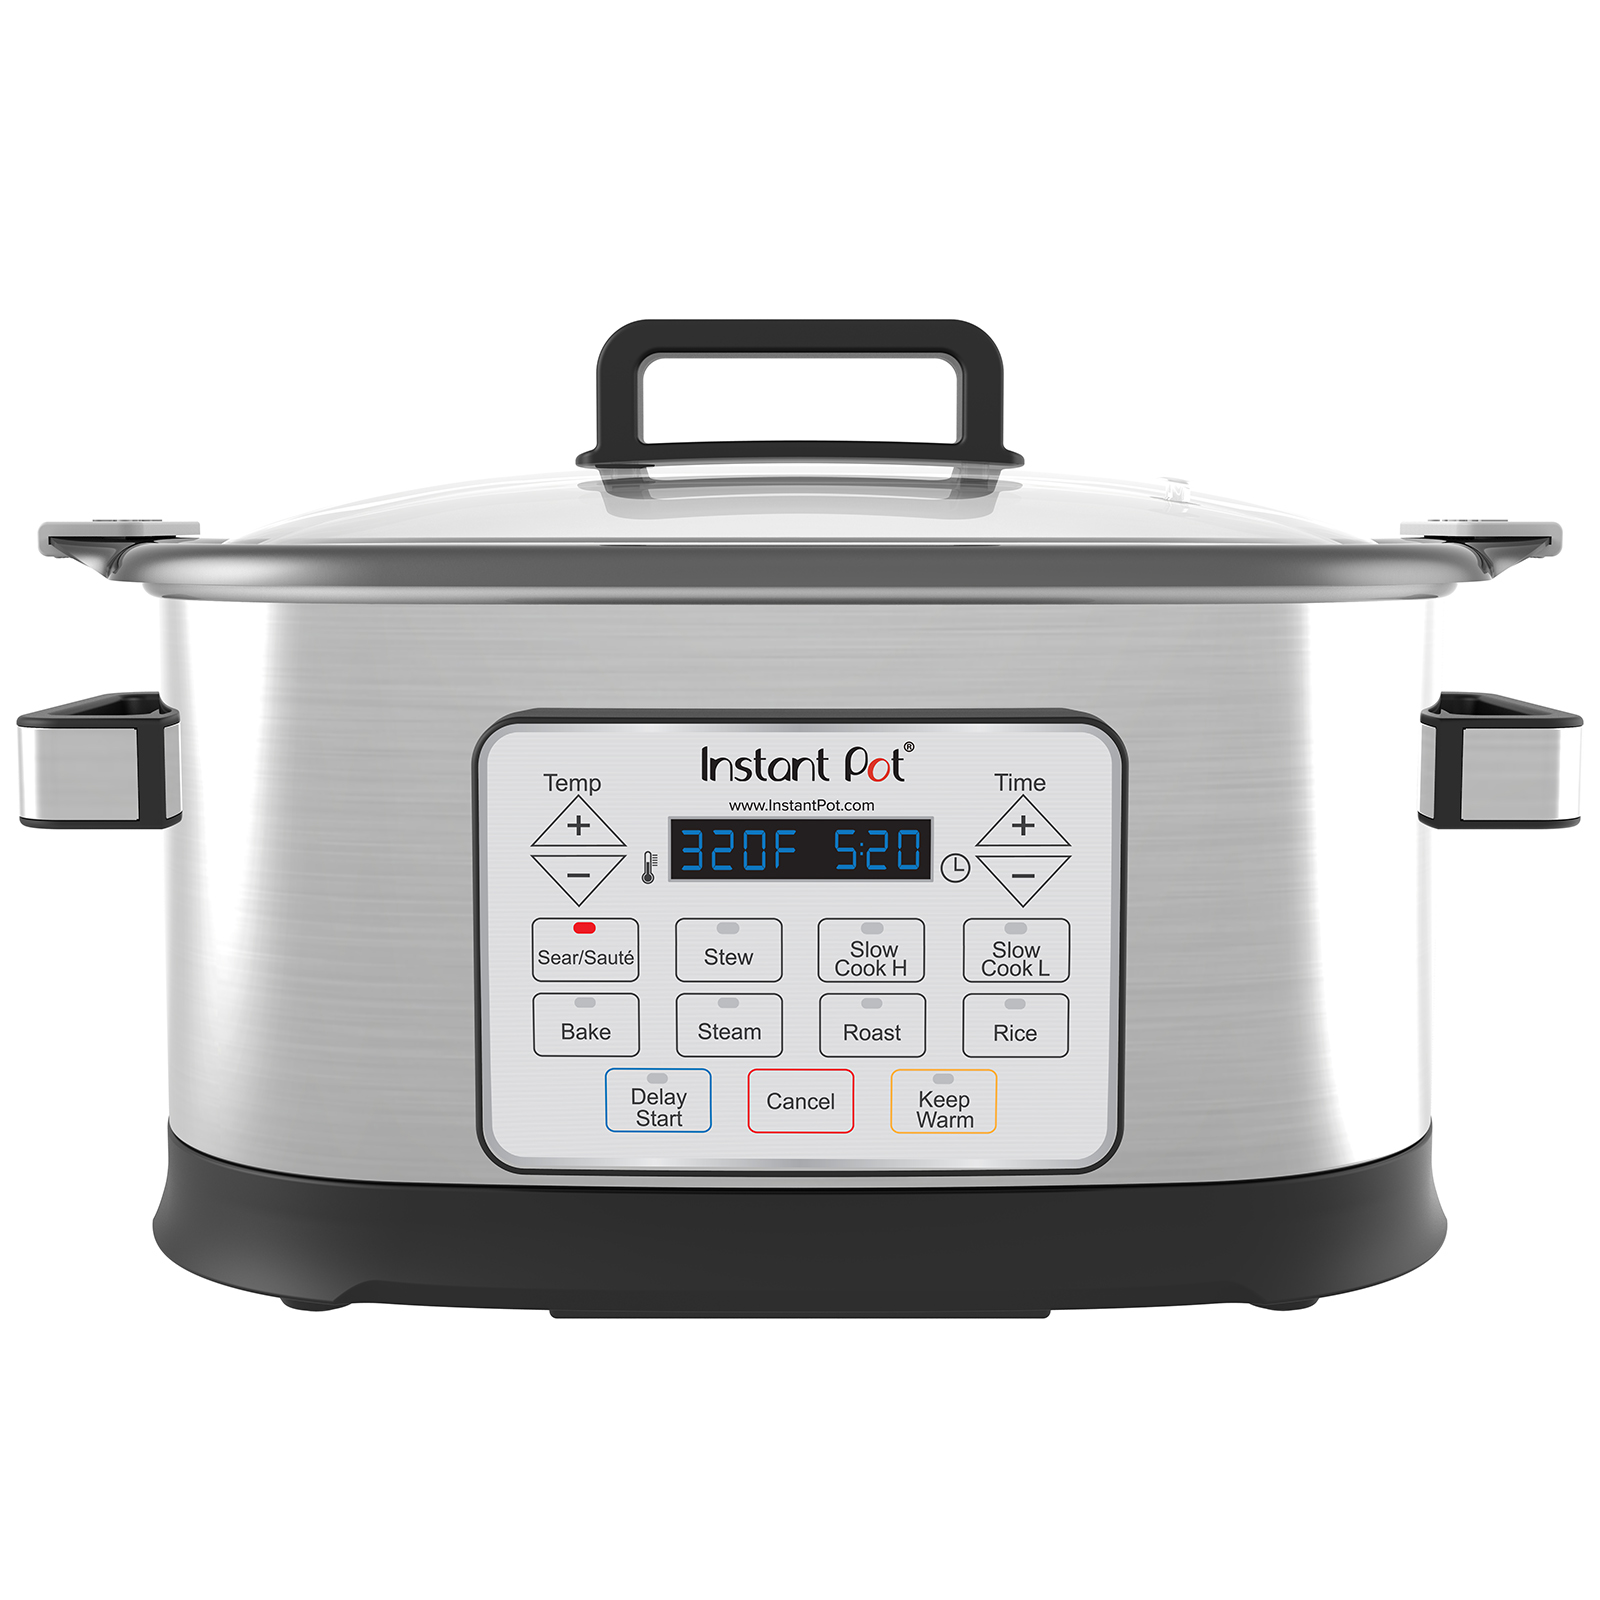 Big W Pressure Cooker Gem 6 Quart Instant Pot